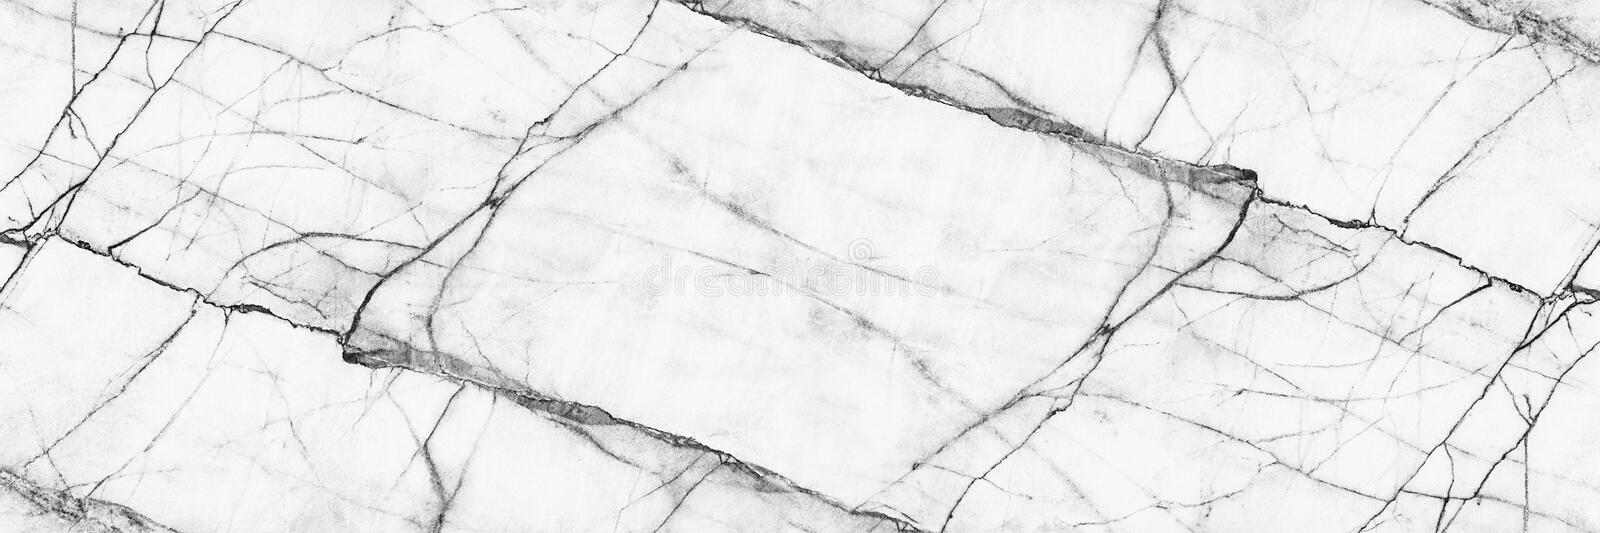 horizontal elegant white marble texture for pattern and background stock photos